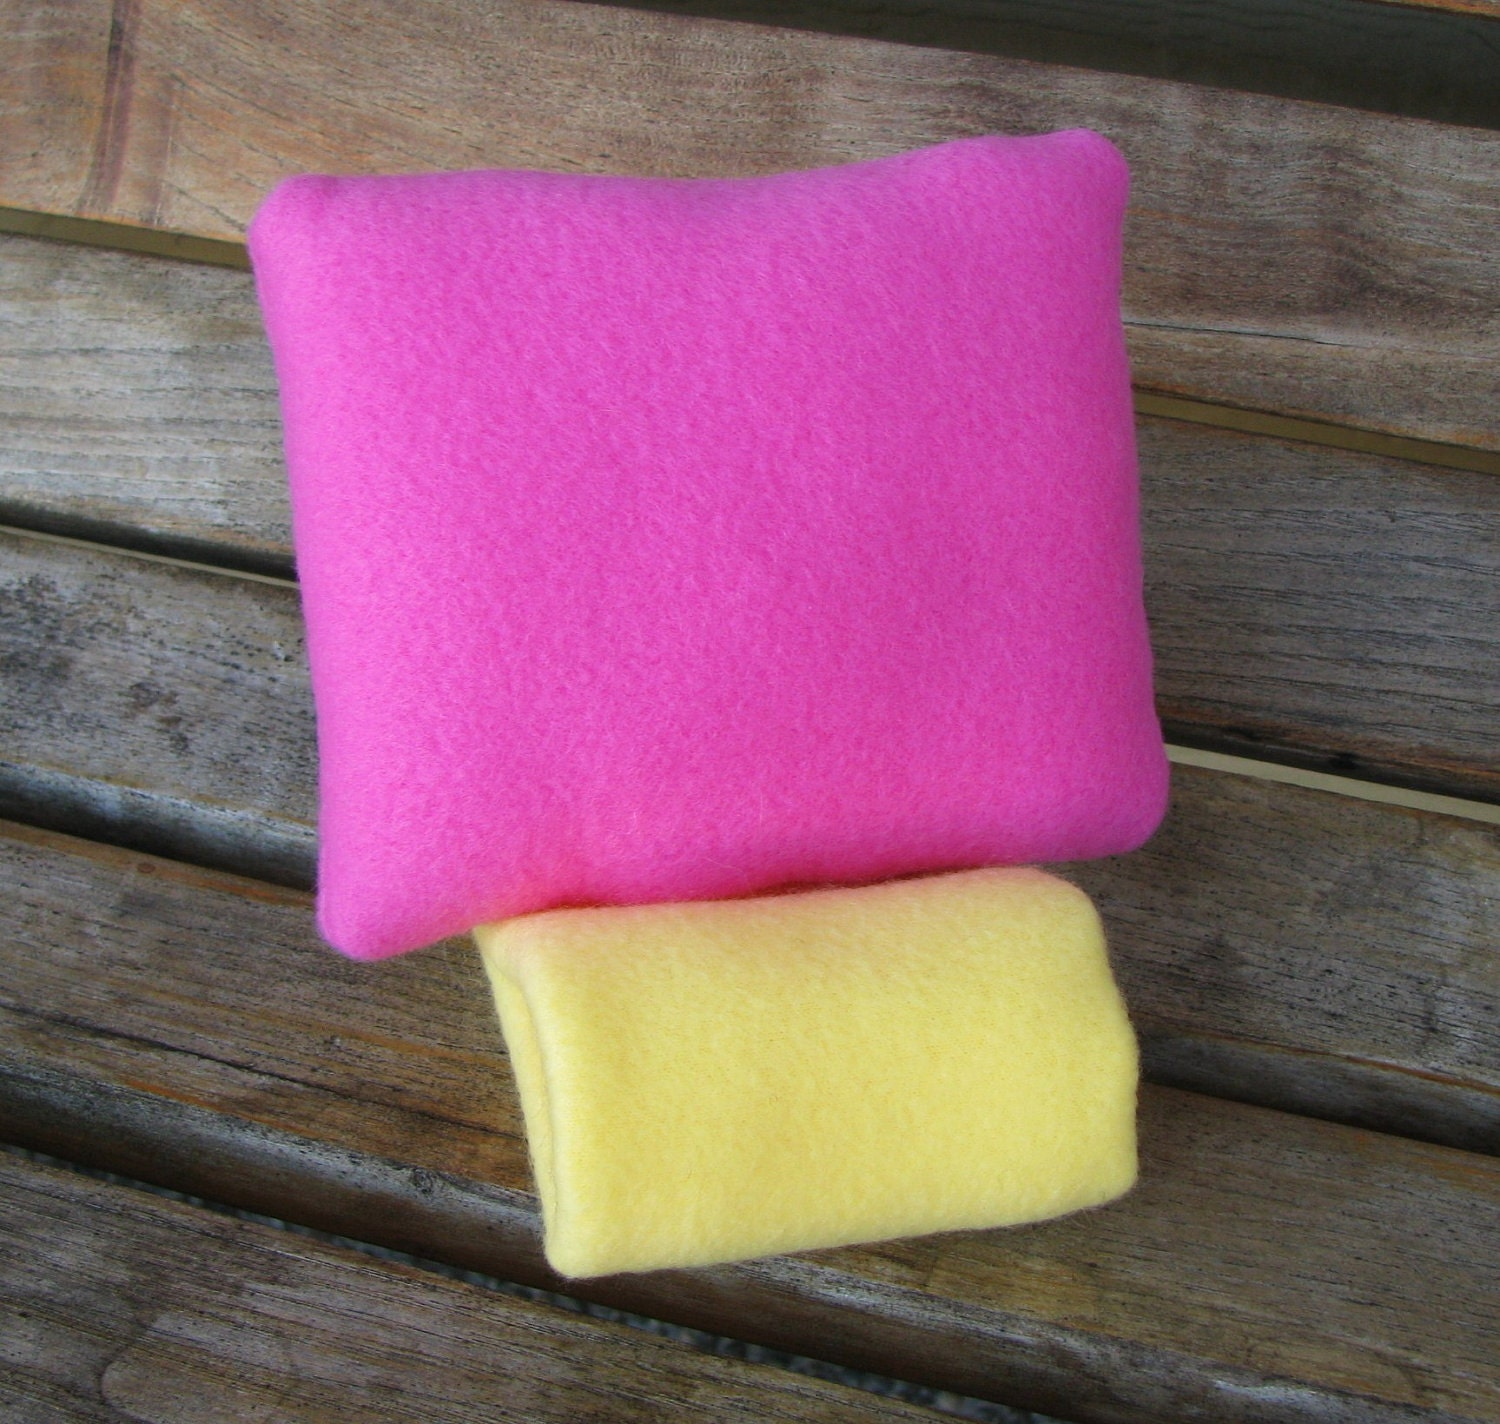 Car Comfort Toddler Booster Seat Child Seatbelt Cover Travel Neck Pillow by SleepyTimez - Pink and Yellow